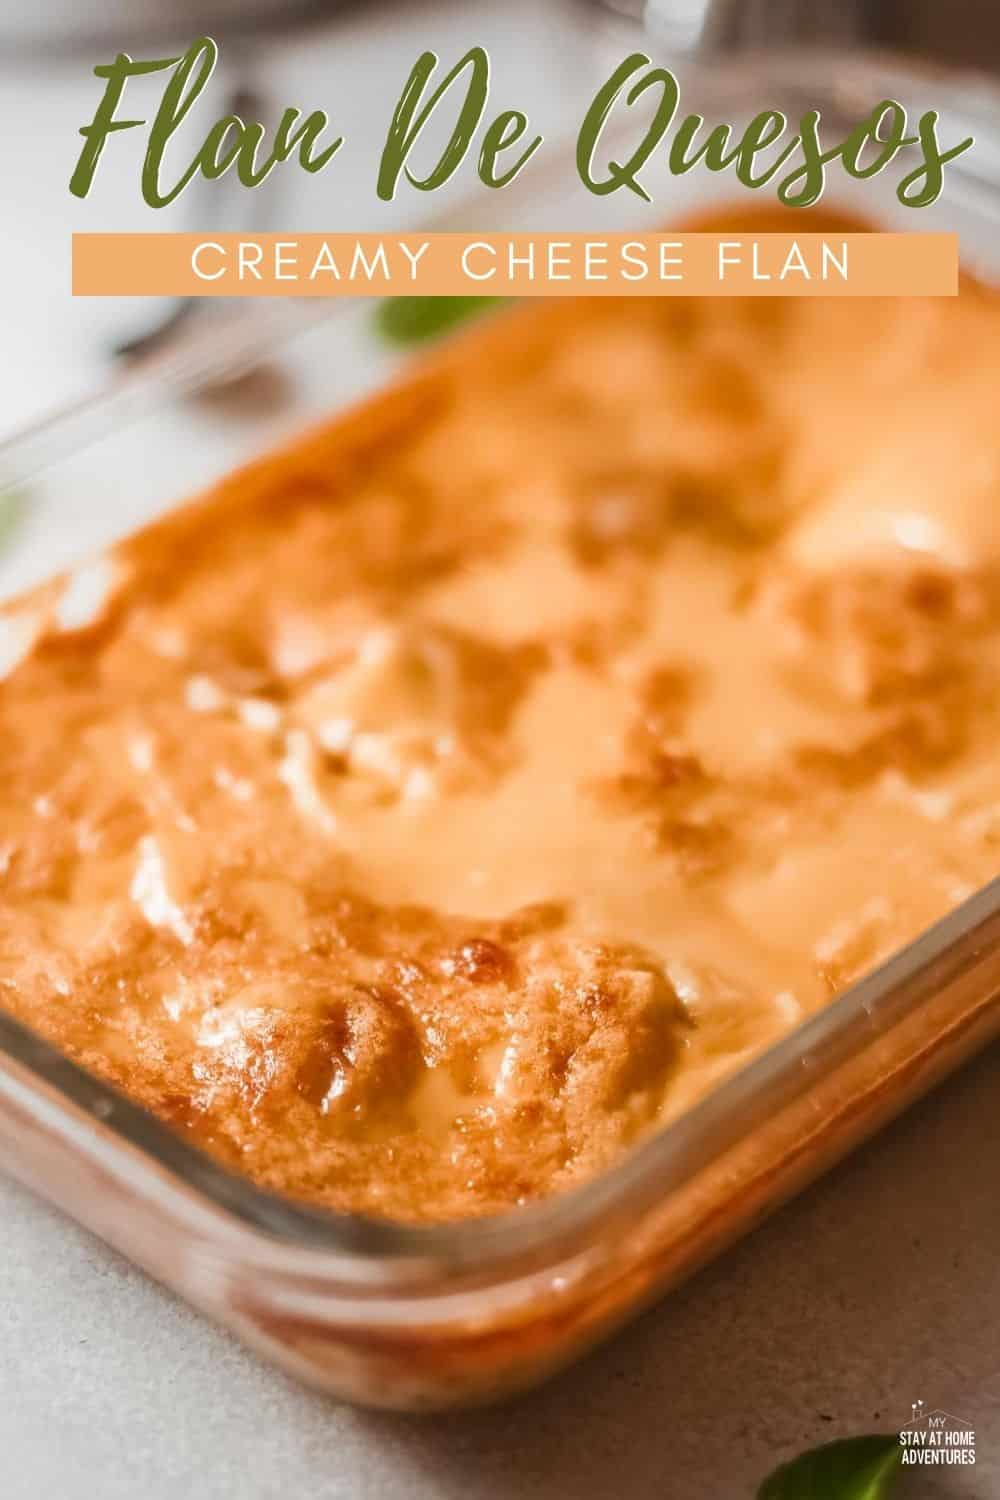 Looking for a delicious, decadent dessert? Flan de queso is a spin on the traditional flan recipe that incorporates cream cheese into the recipe. via @mystayathome